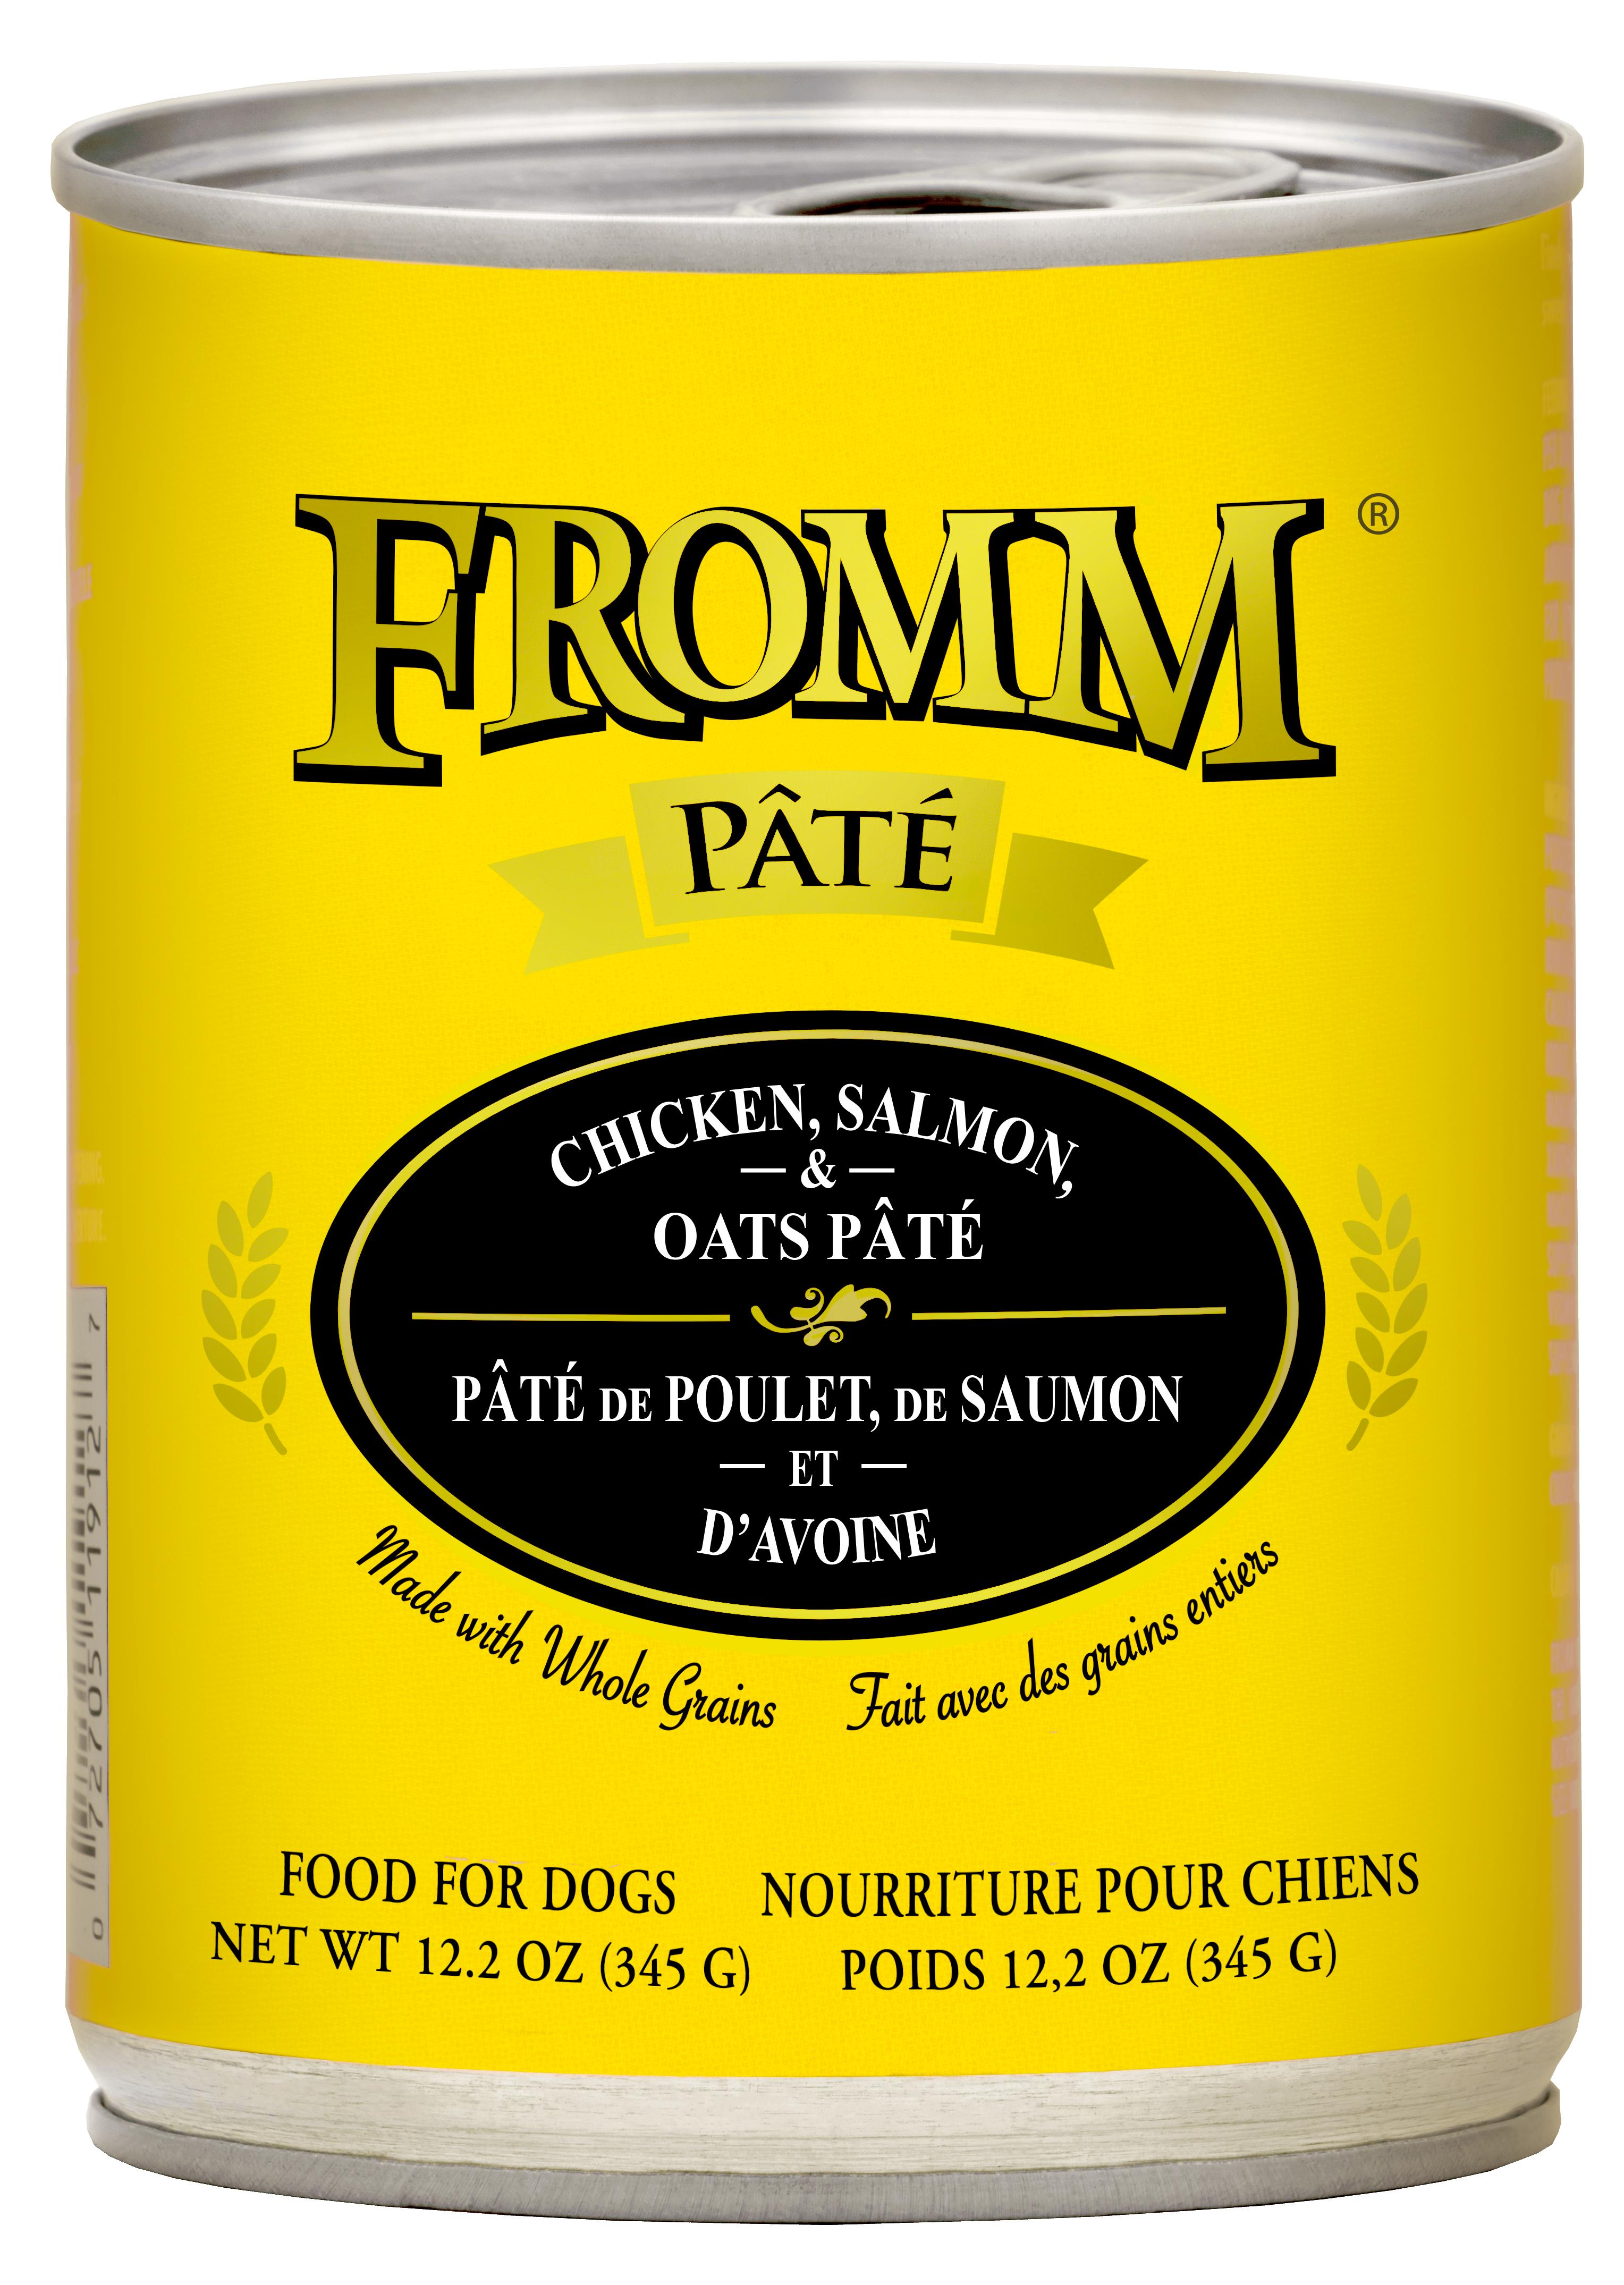 Fromm Chicken, Salmon & Oats Pate Canned Dog Food, 12.2-oz